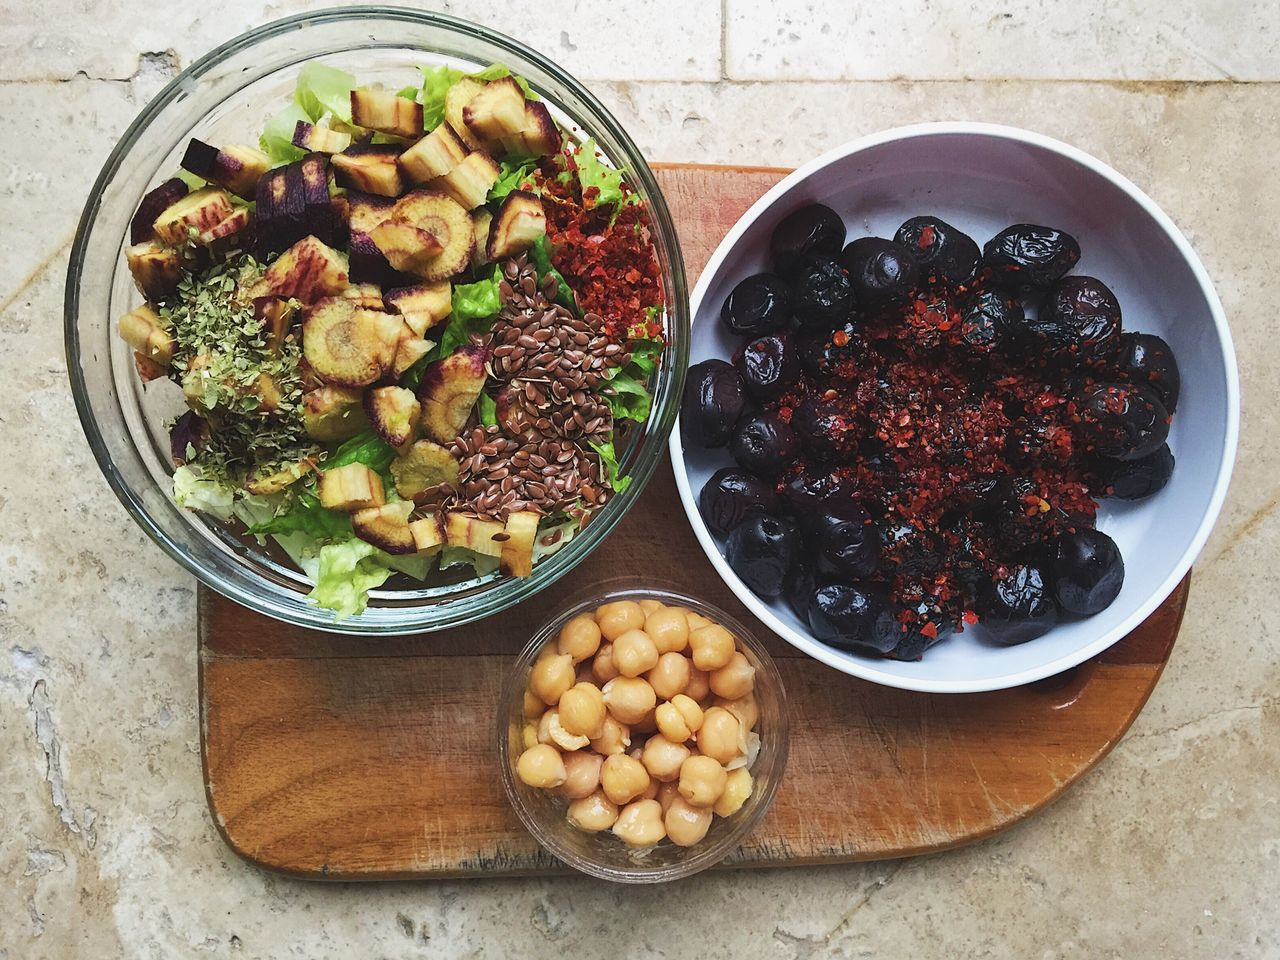 Salad with flax seeds, greens, and red carrot, plus cooked chickpeas and black olives with red pepper spices Carrot Chickpeas Cooking Delicious Flax Seeds Food Food And Drink Foodporn Healthy Healthy Eating Healthy Lifestyle Home Cooking Ingredient Marmaris Meal Olives Organic Recipe Salad Spices Turkey Vegetables Vegetarian Food Yummy